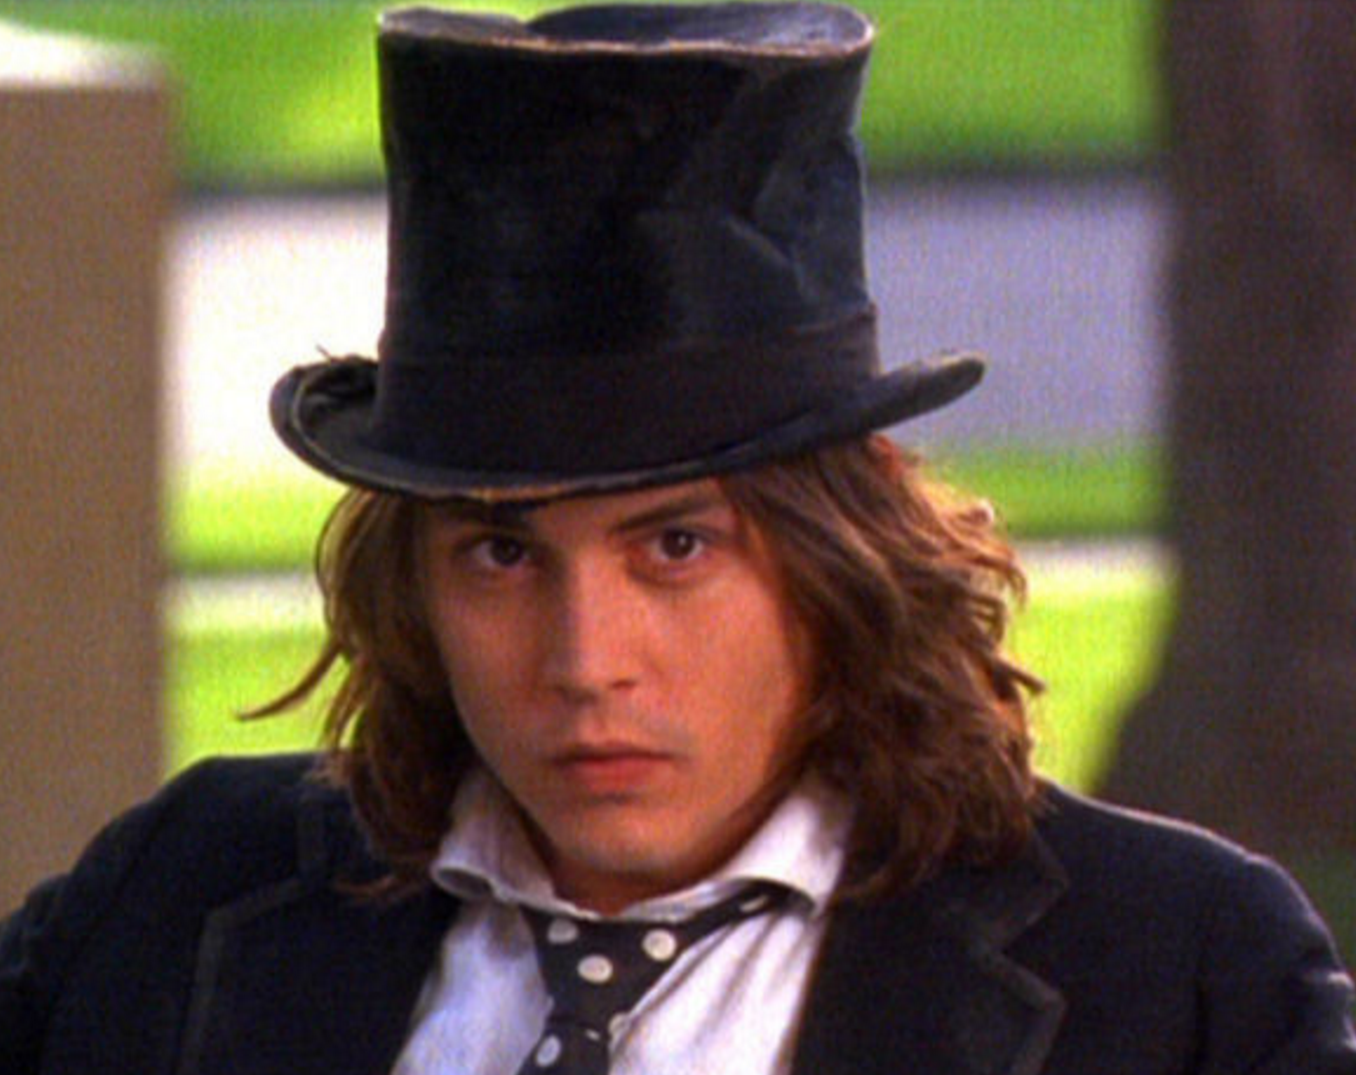 Ghost_-_Oliver_twist_-_Johnny_Depp.PNG